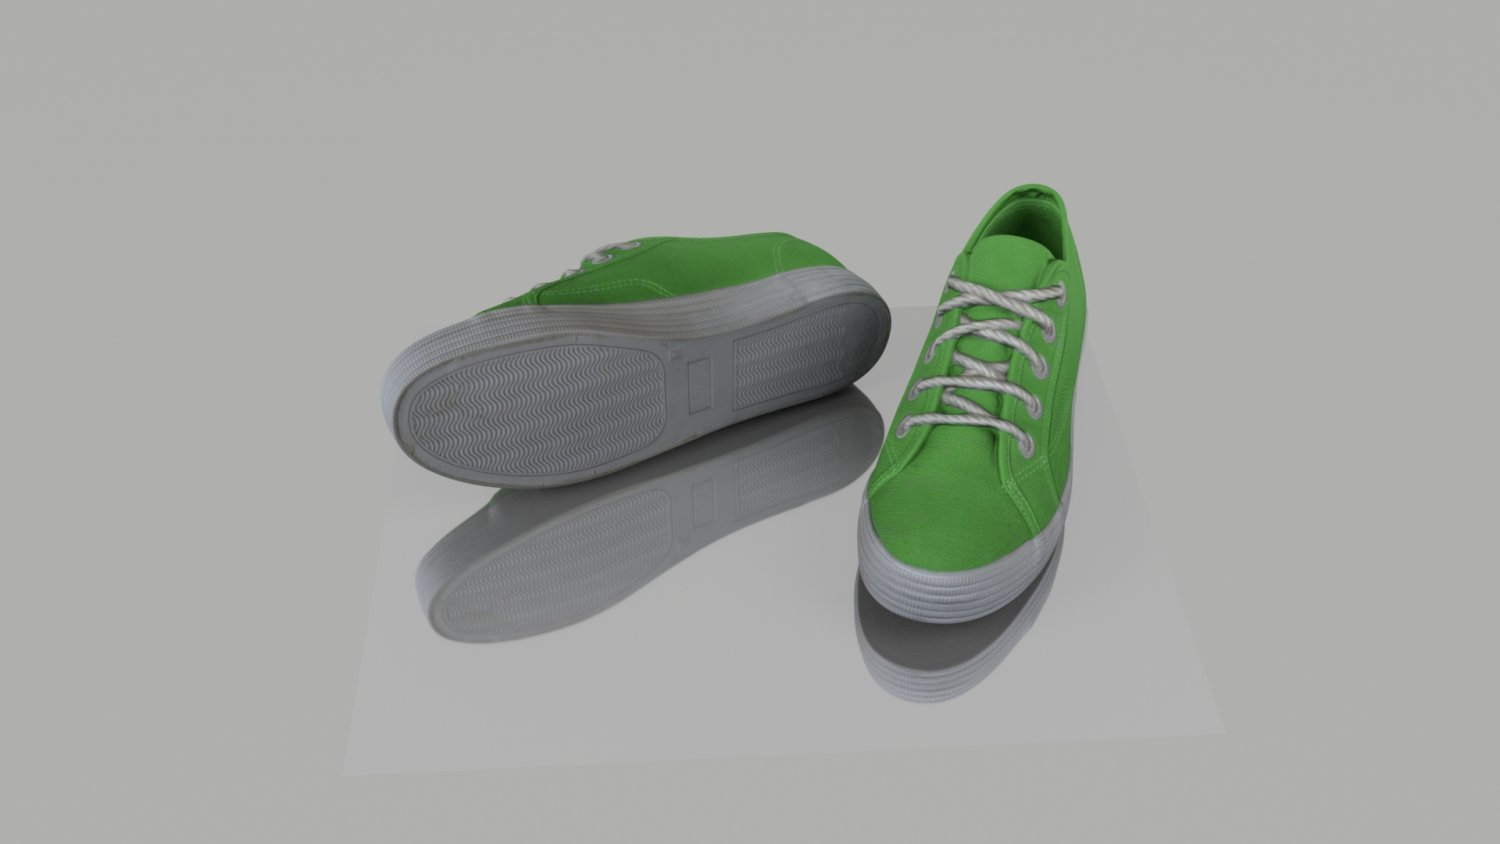 Pair of summer shoes low poly 3D Model in Clothing 3DExport